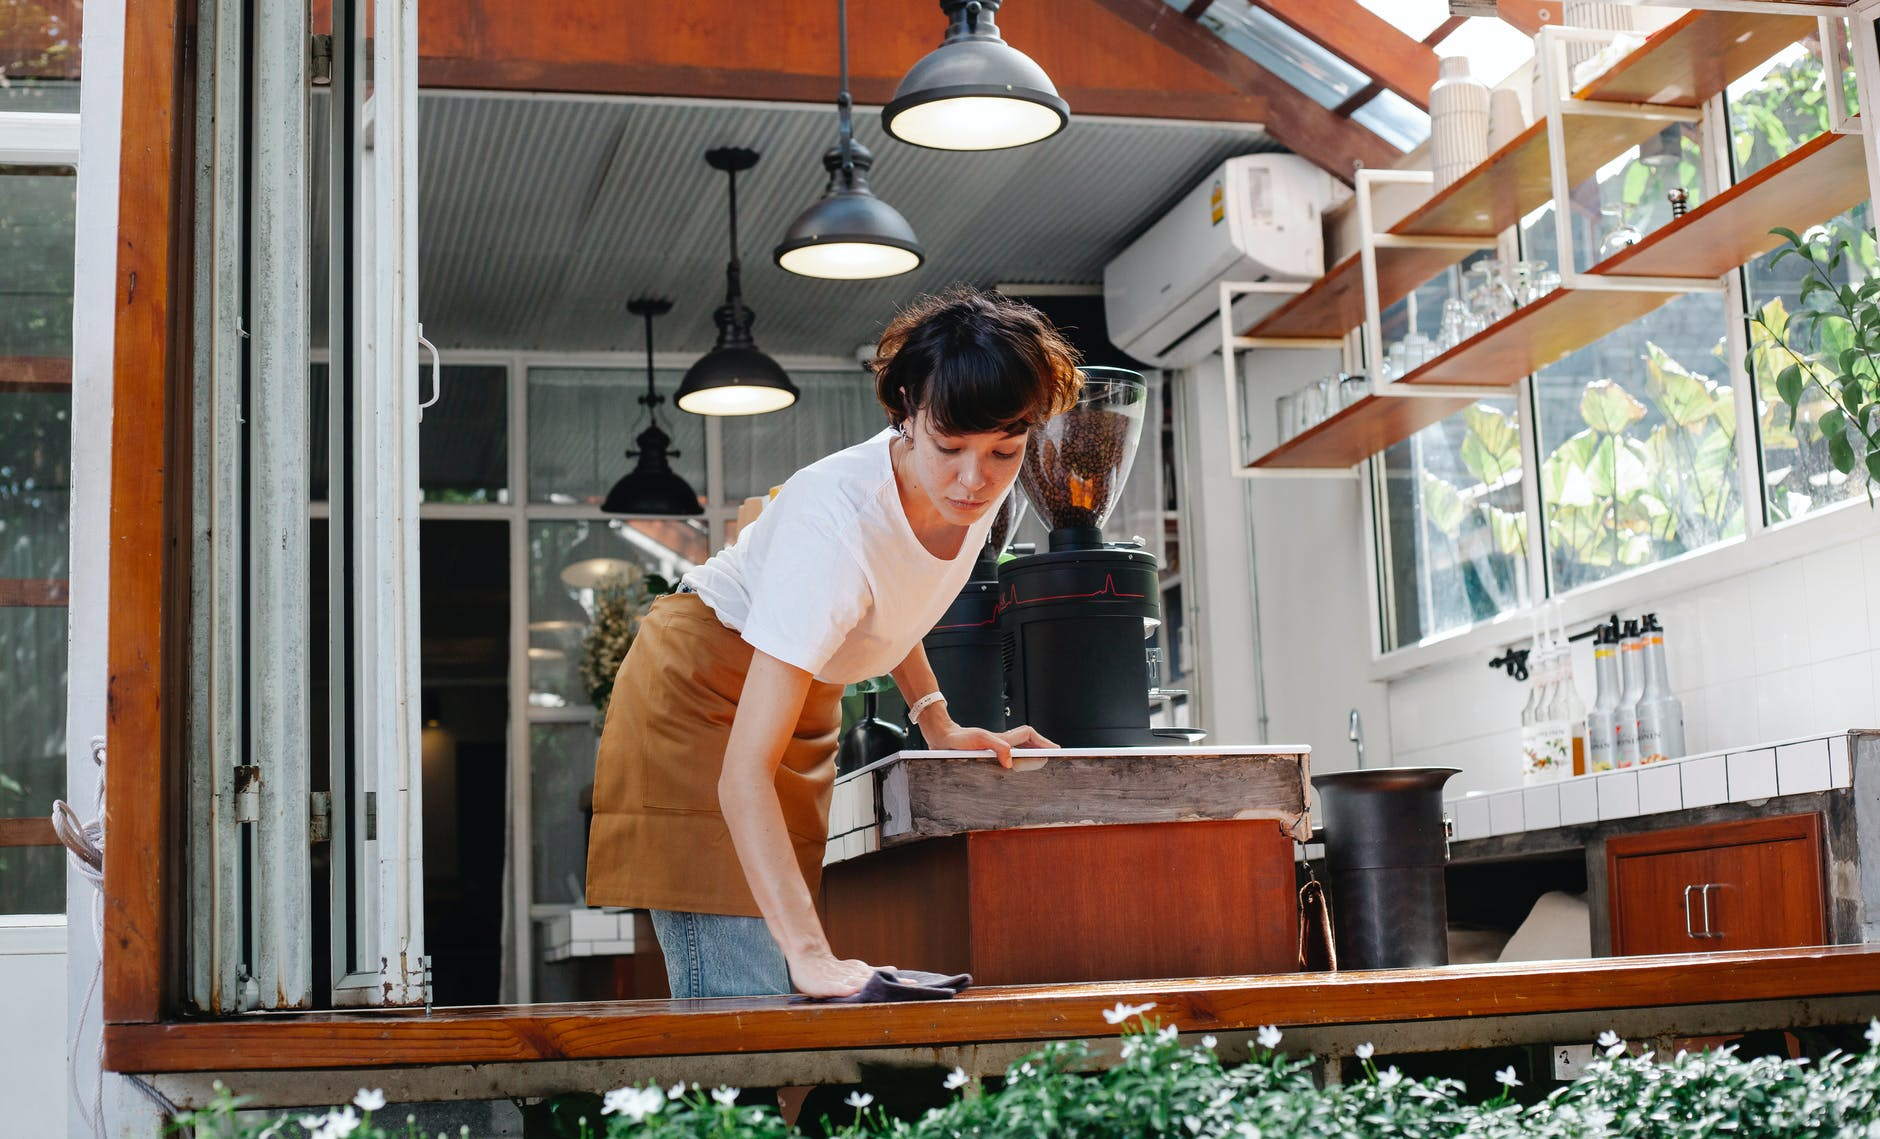 7-ways-you-can-retain-good-restaurant-employees